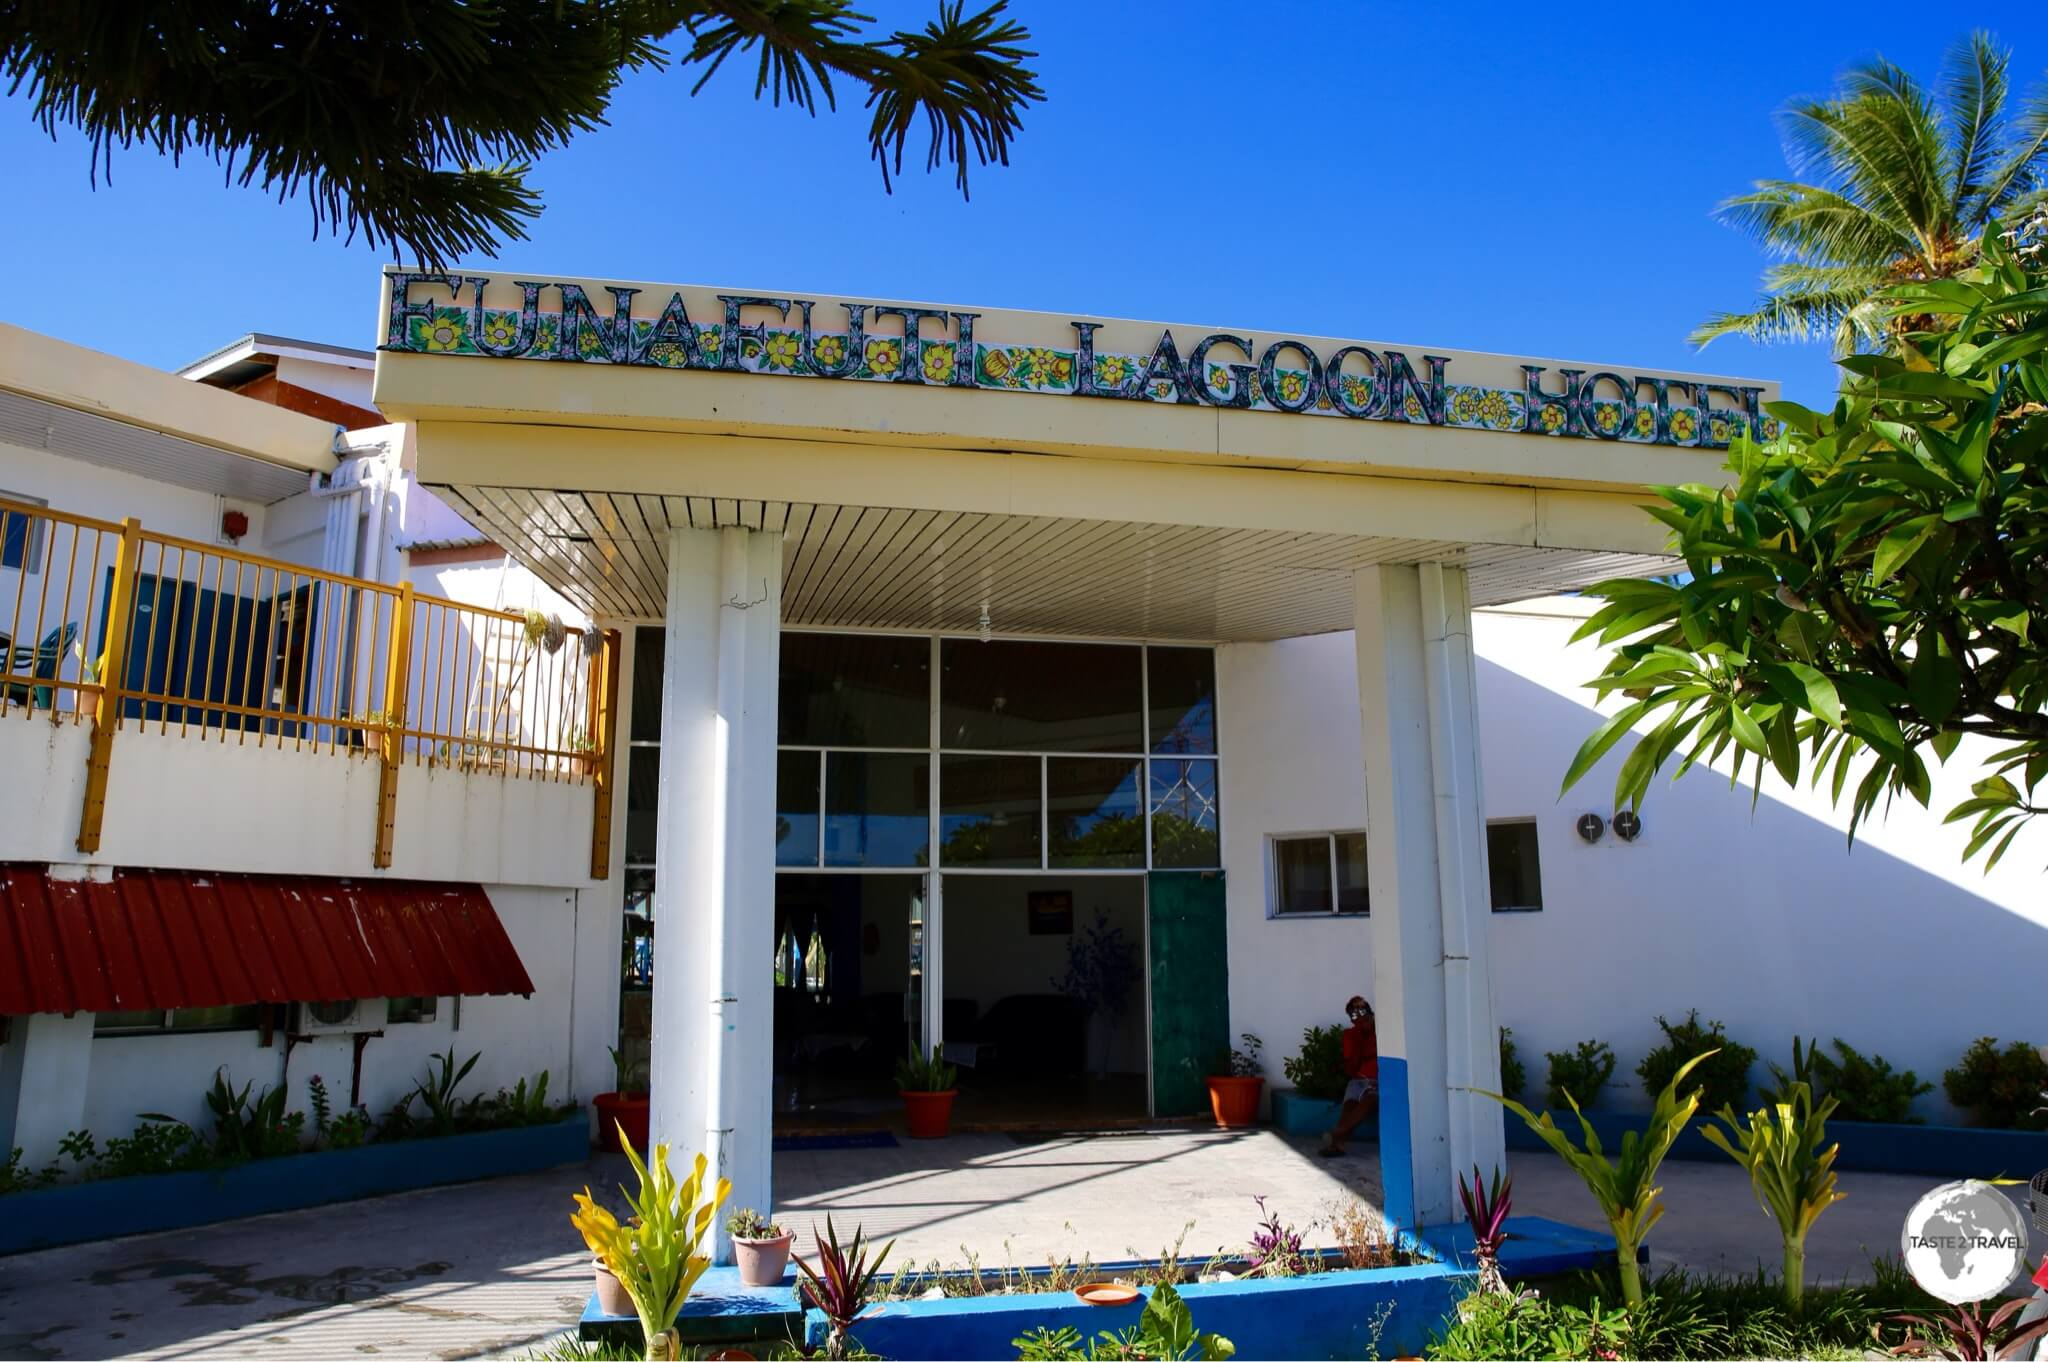 The only hotel on Tuvalu - the (maybe 2-star) Funafuti Lagoon hotel.